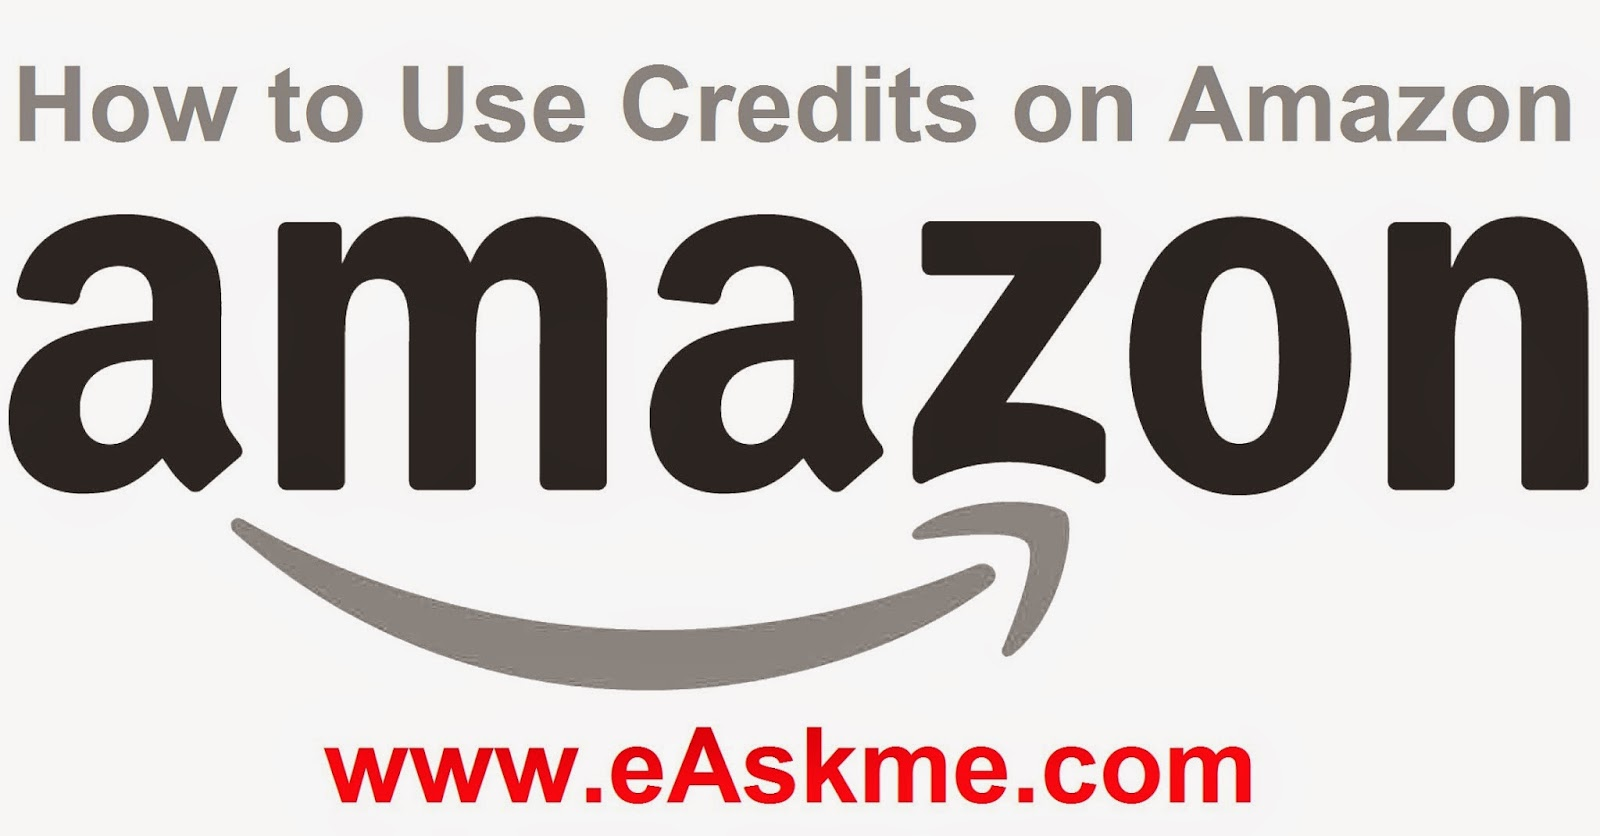 How to Use Credits on Amazon : eAskme